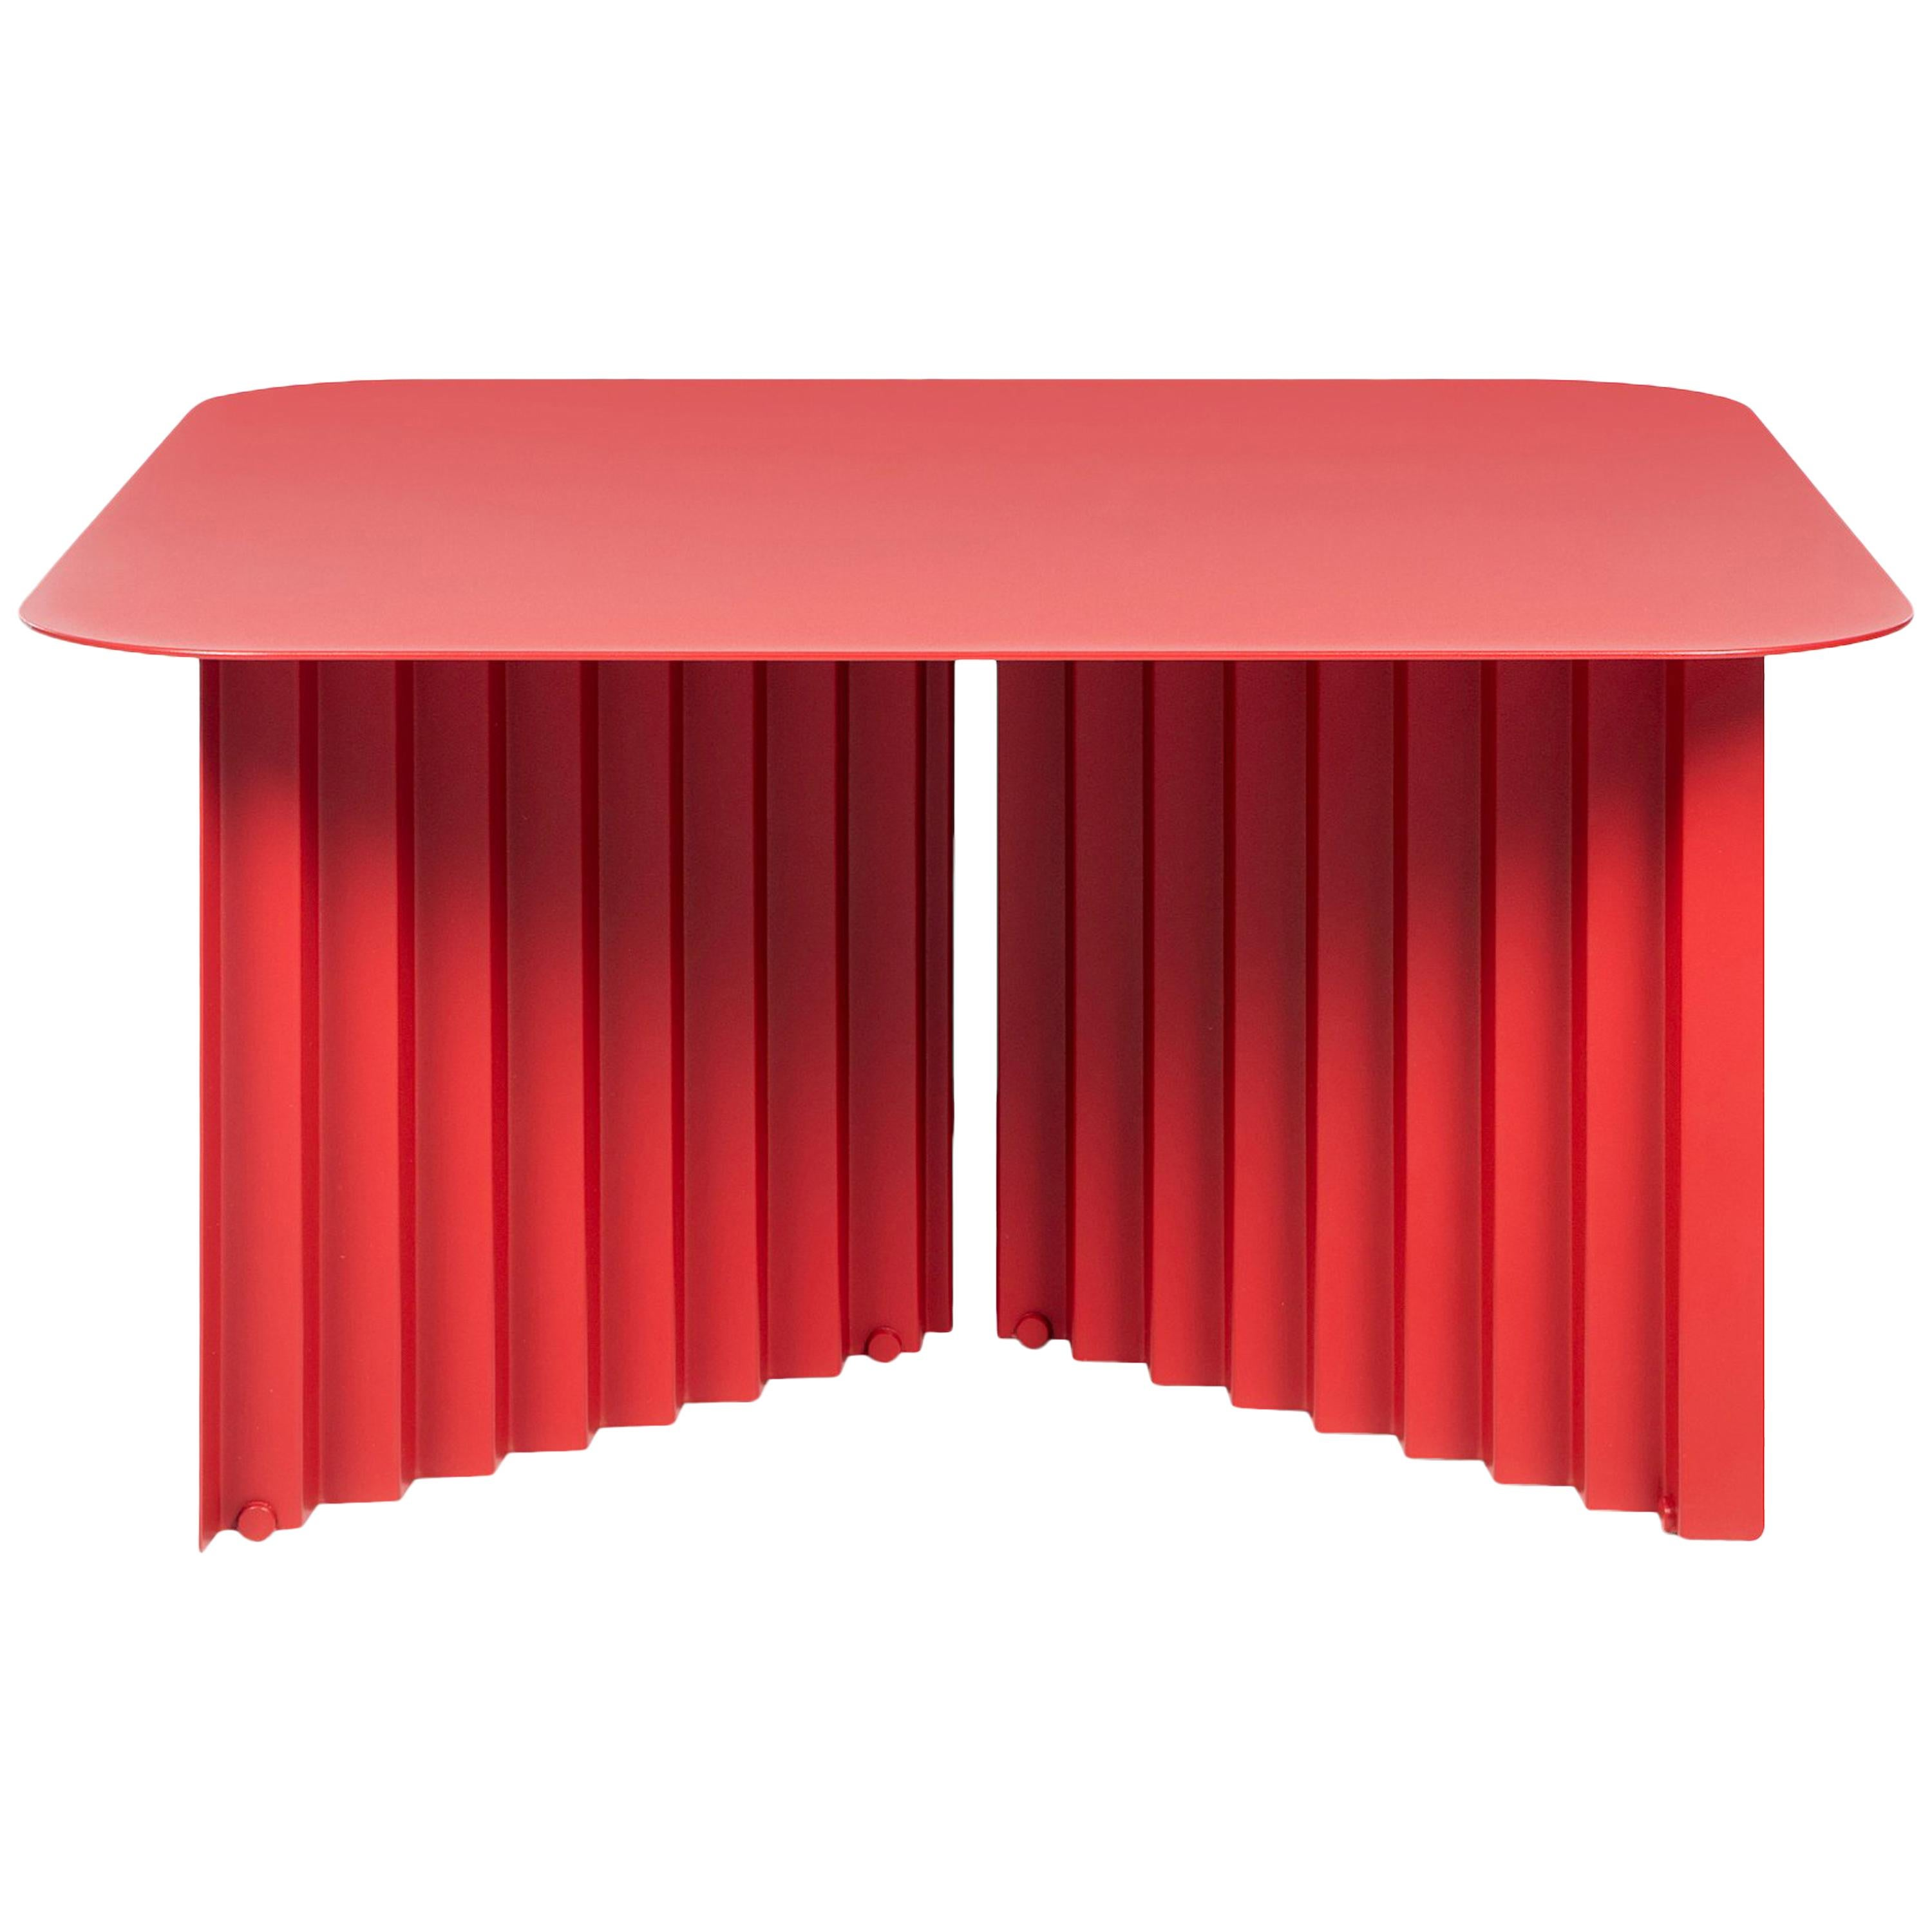 RS Barcelona Plec Medium Table in Red Metal by A.P.O.